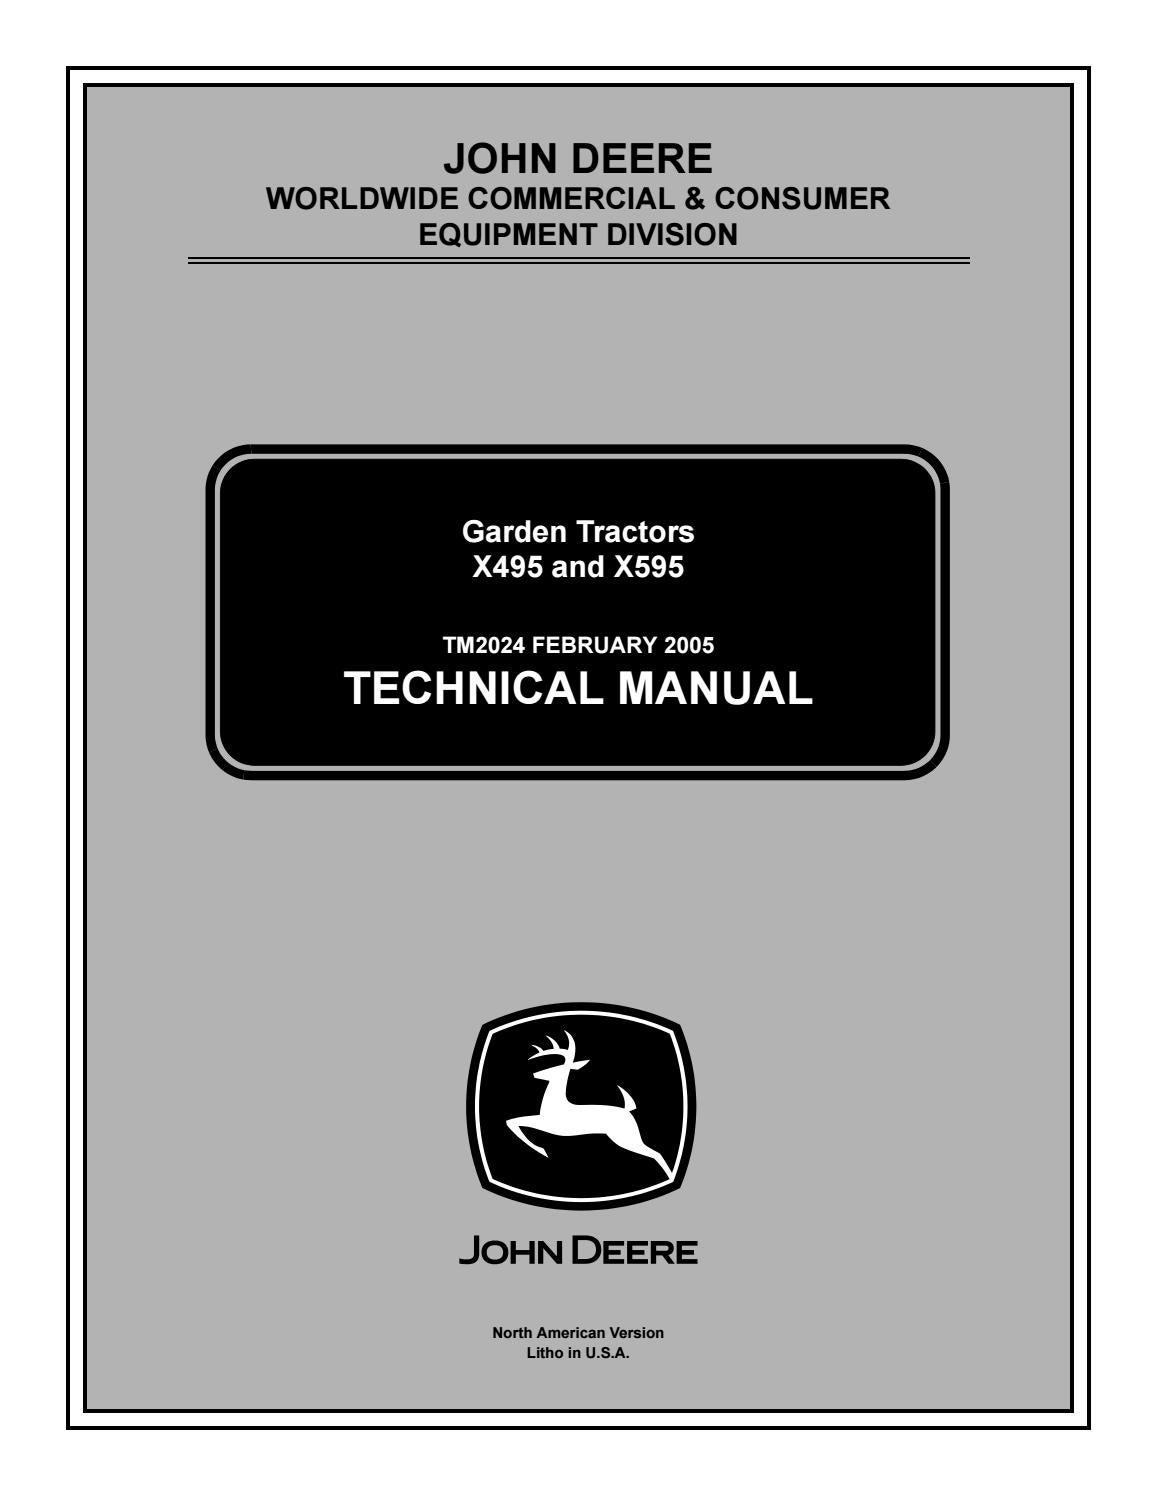 [DIAGRAM_4FR]  John deere x495 4wd lawn & garden tractor service repair manual by 163294 -  issuu | John Deere X495 Wiring Diagram |  | Issuu